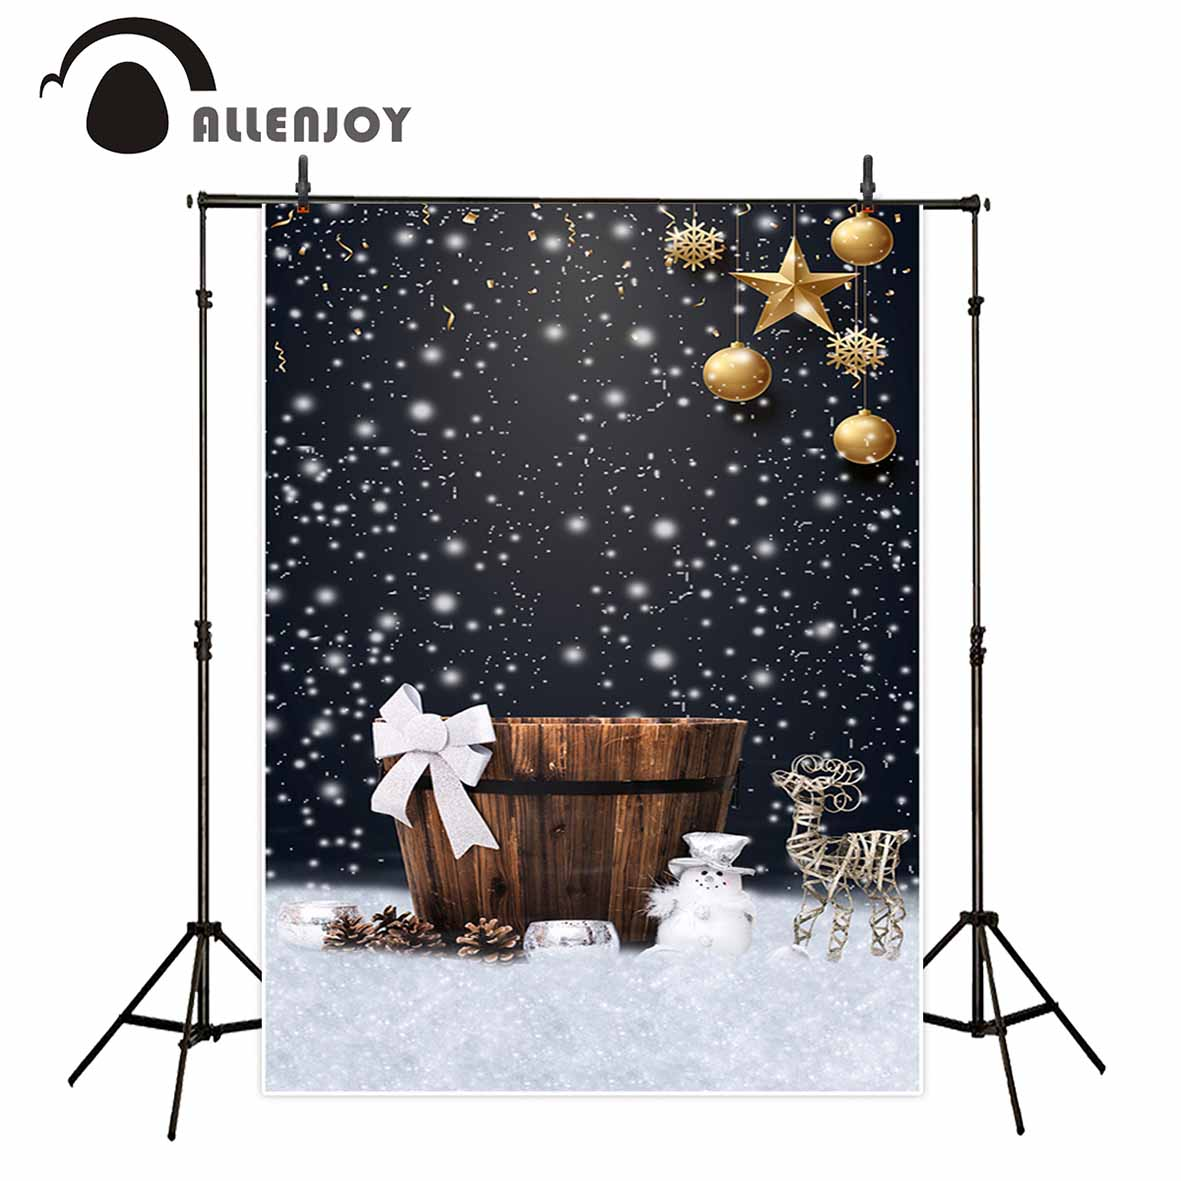 Allenjoy photo backdrop Christmas baby shower bokeh sow winter Tub background photocall customize portrait shooting allenjoy christmas photography backdrop wooden fireplace xmas sock gift children s photocall photographic customize festive